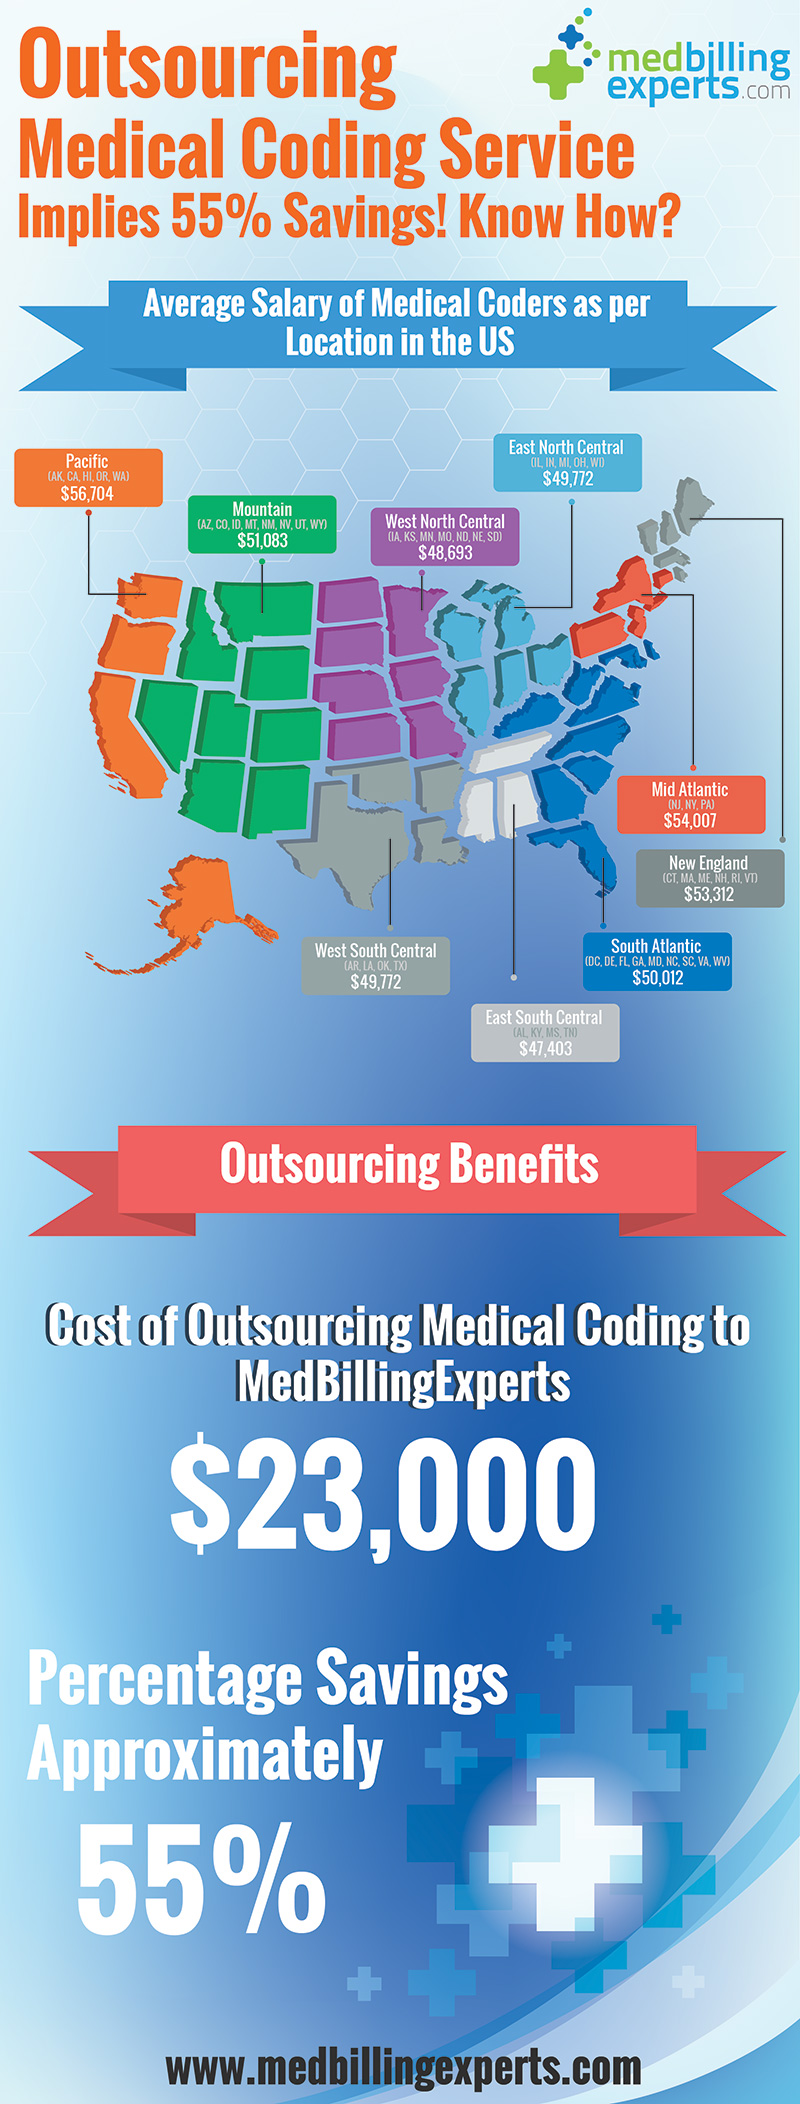 Outsourcing-Medical-Coding-Service-Implies-55%-Savings-Know-How-web